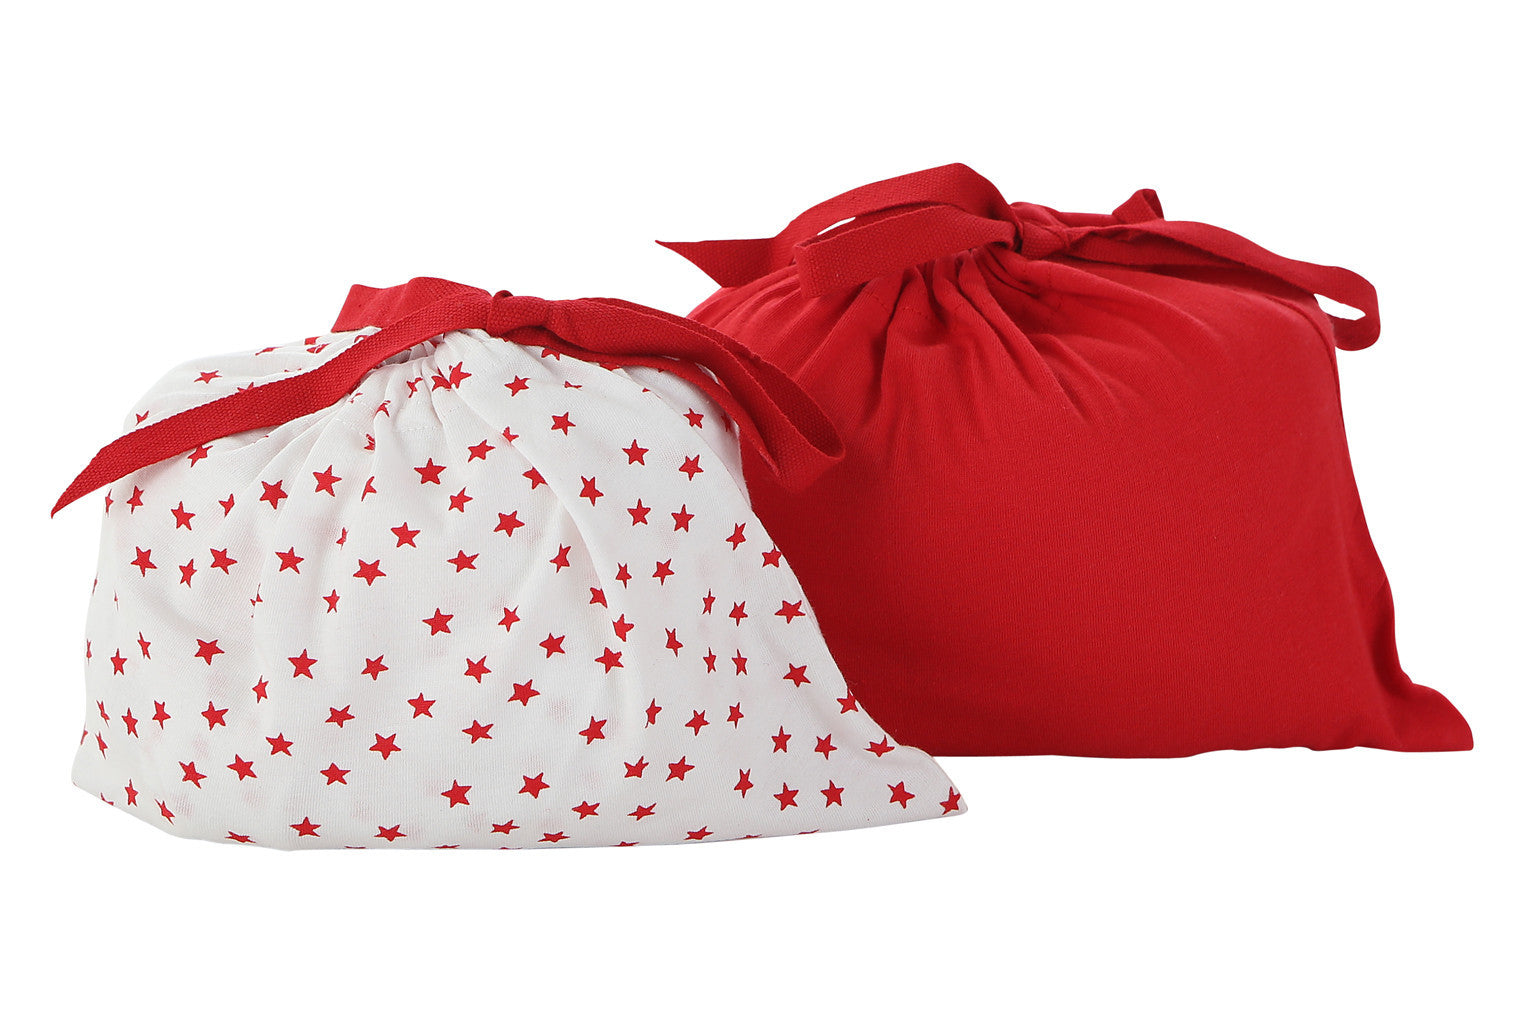 red fitted crib sheet set